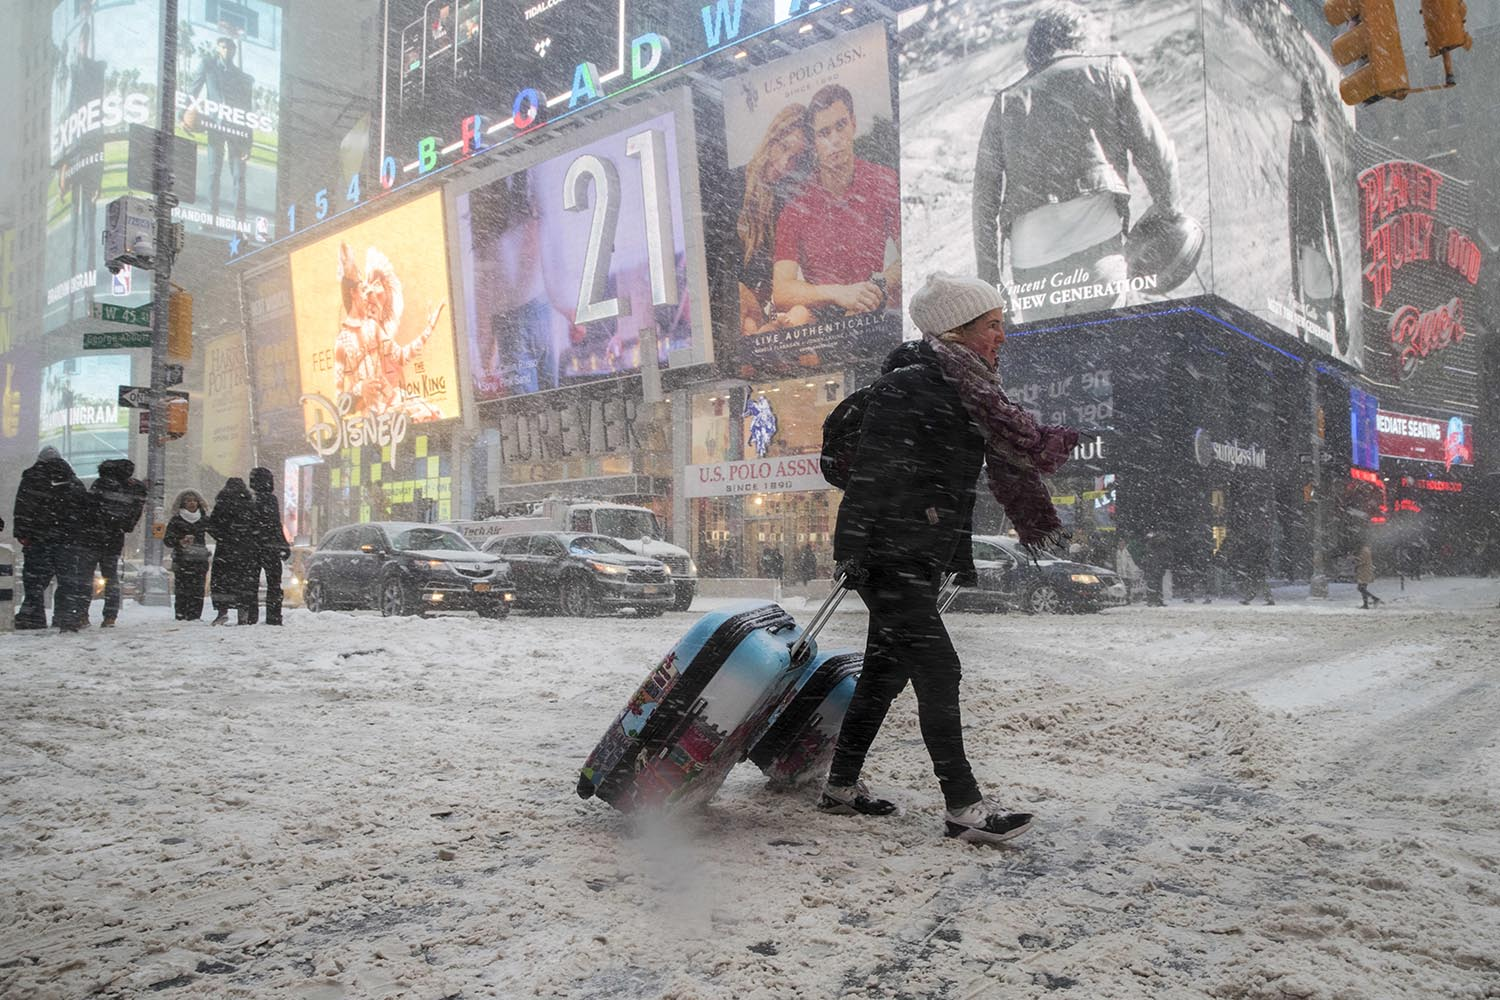 "<div class=""meta image-caption""><div class=""origin-logo origin-image ap""><span>AP</span></div><span class=""caption-text"">Rebecca Hollis of New Zealand drags her suitcases in a snowstorm through Times Square on her way to a hotel, Thursday, Jan. 4, 2018, in New York. (AP Photo/Mary Altaffer)</span></div>"